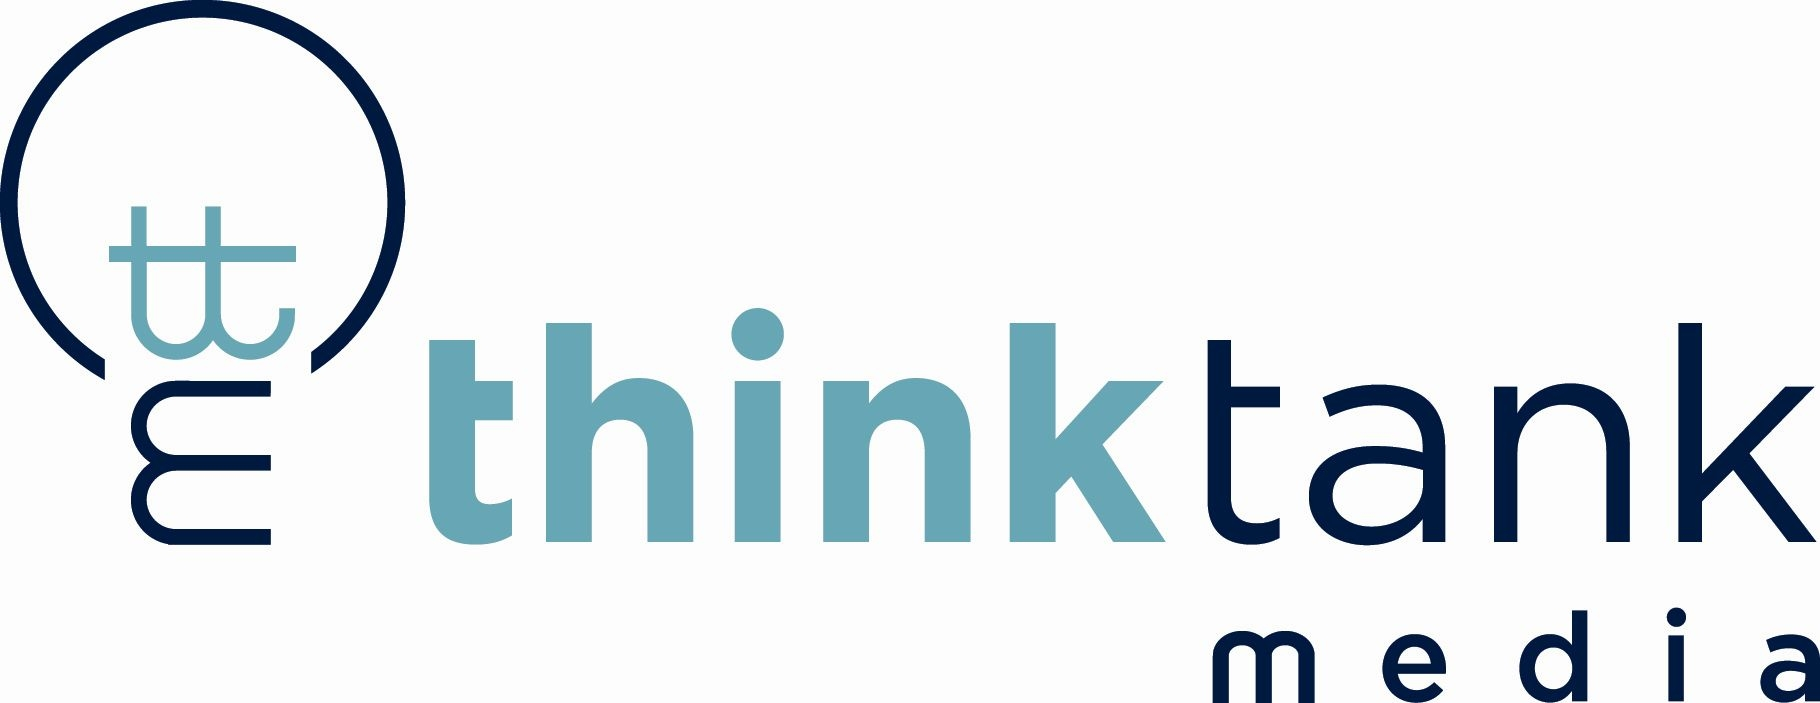 Think Thank; logo